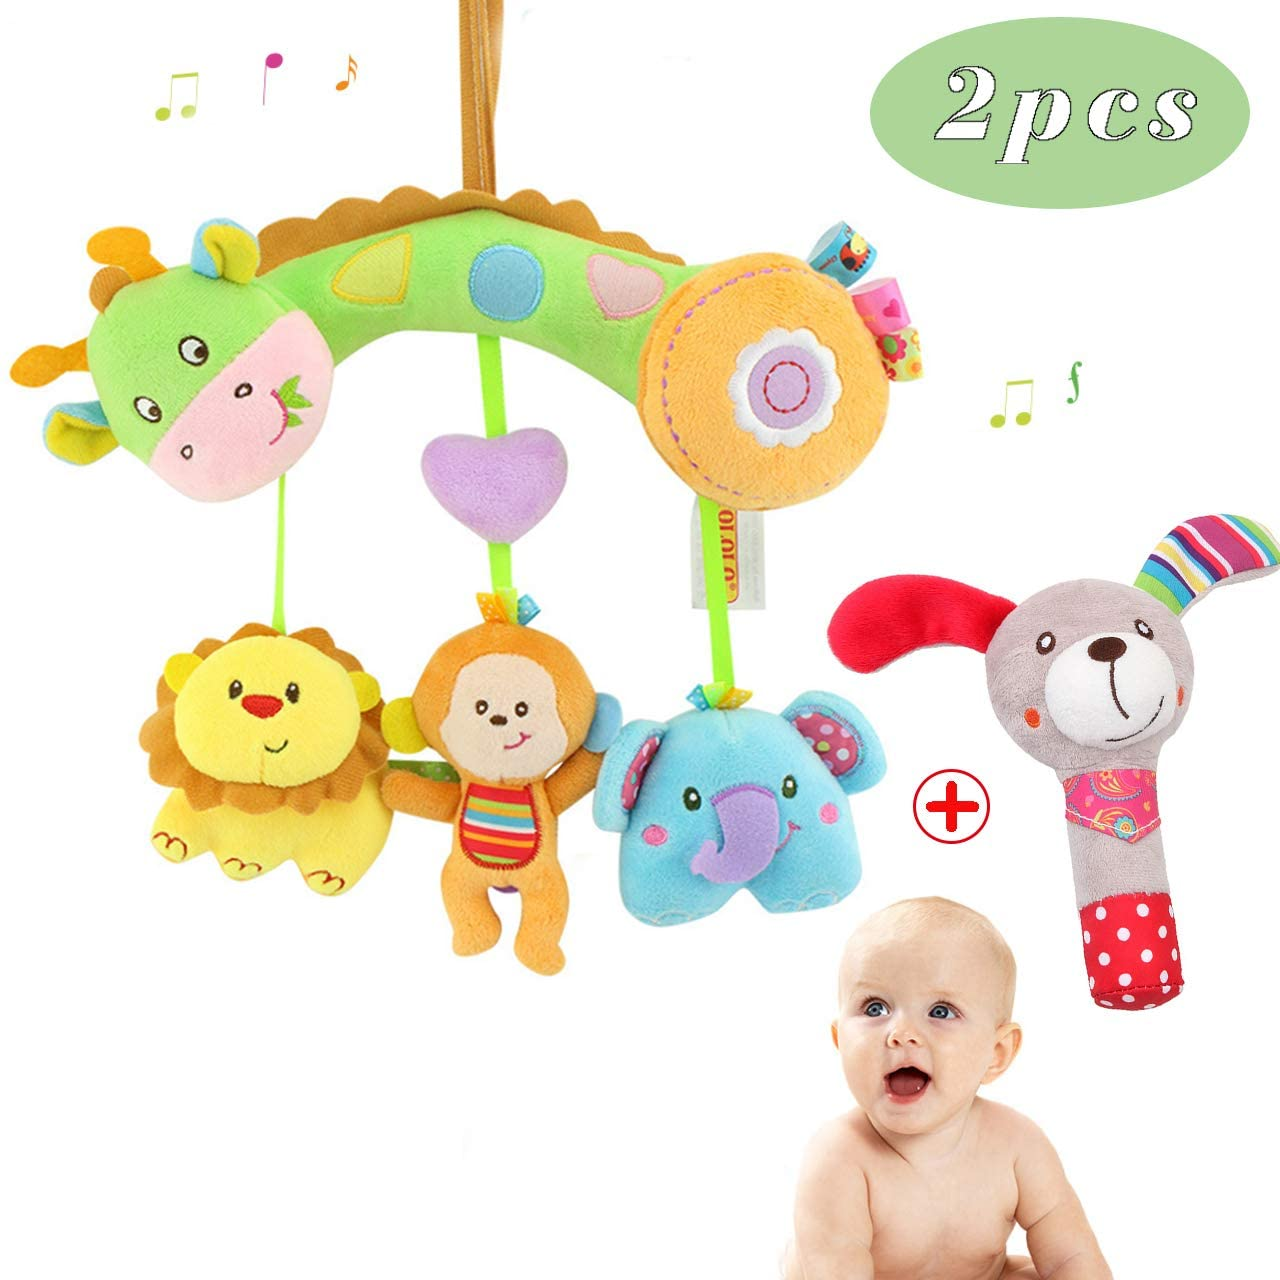 GHIFANT Baby Soft Rattles Cute Giraffe Rattles Baby Toys Plush Rattles Set Gift for Newborn Toddler Boys and Girls (Giraffe)